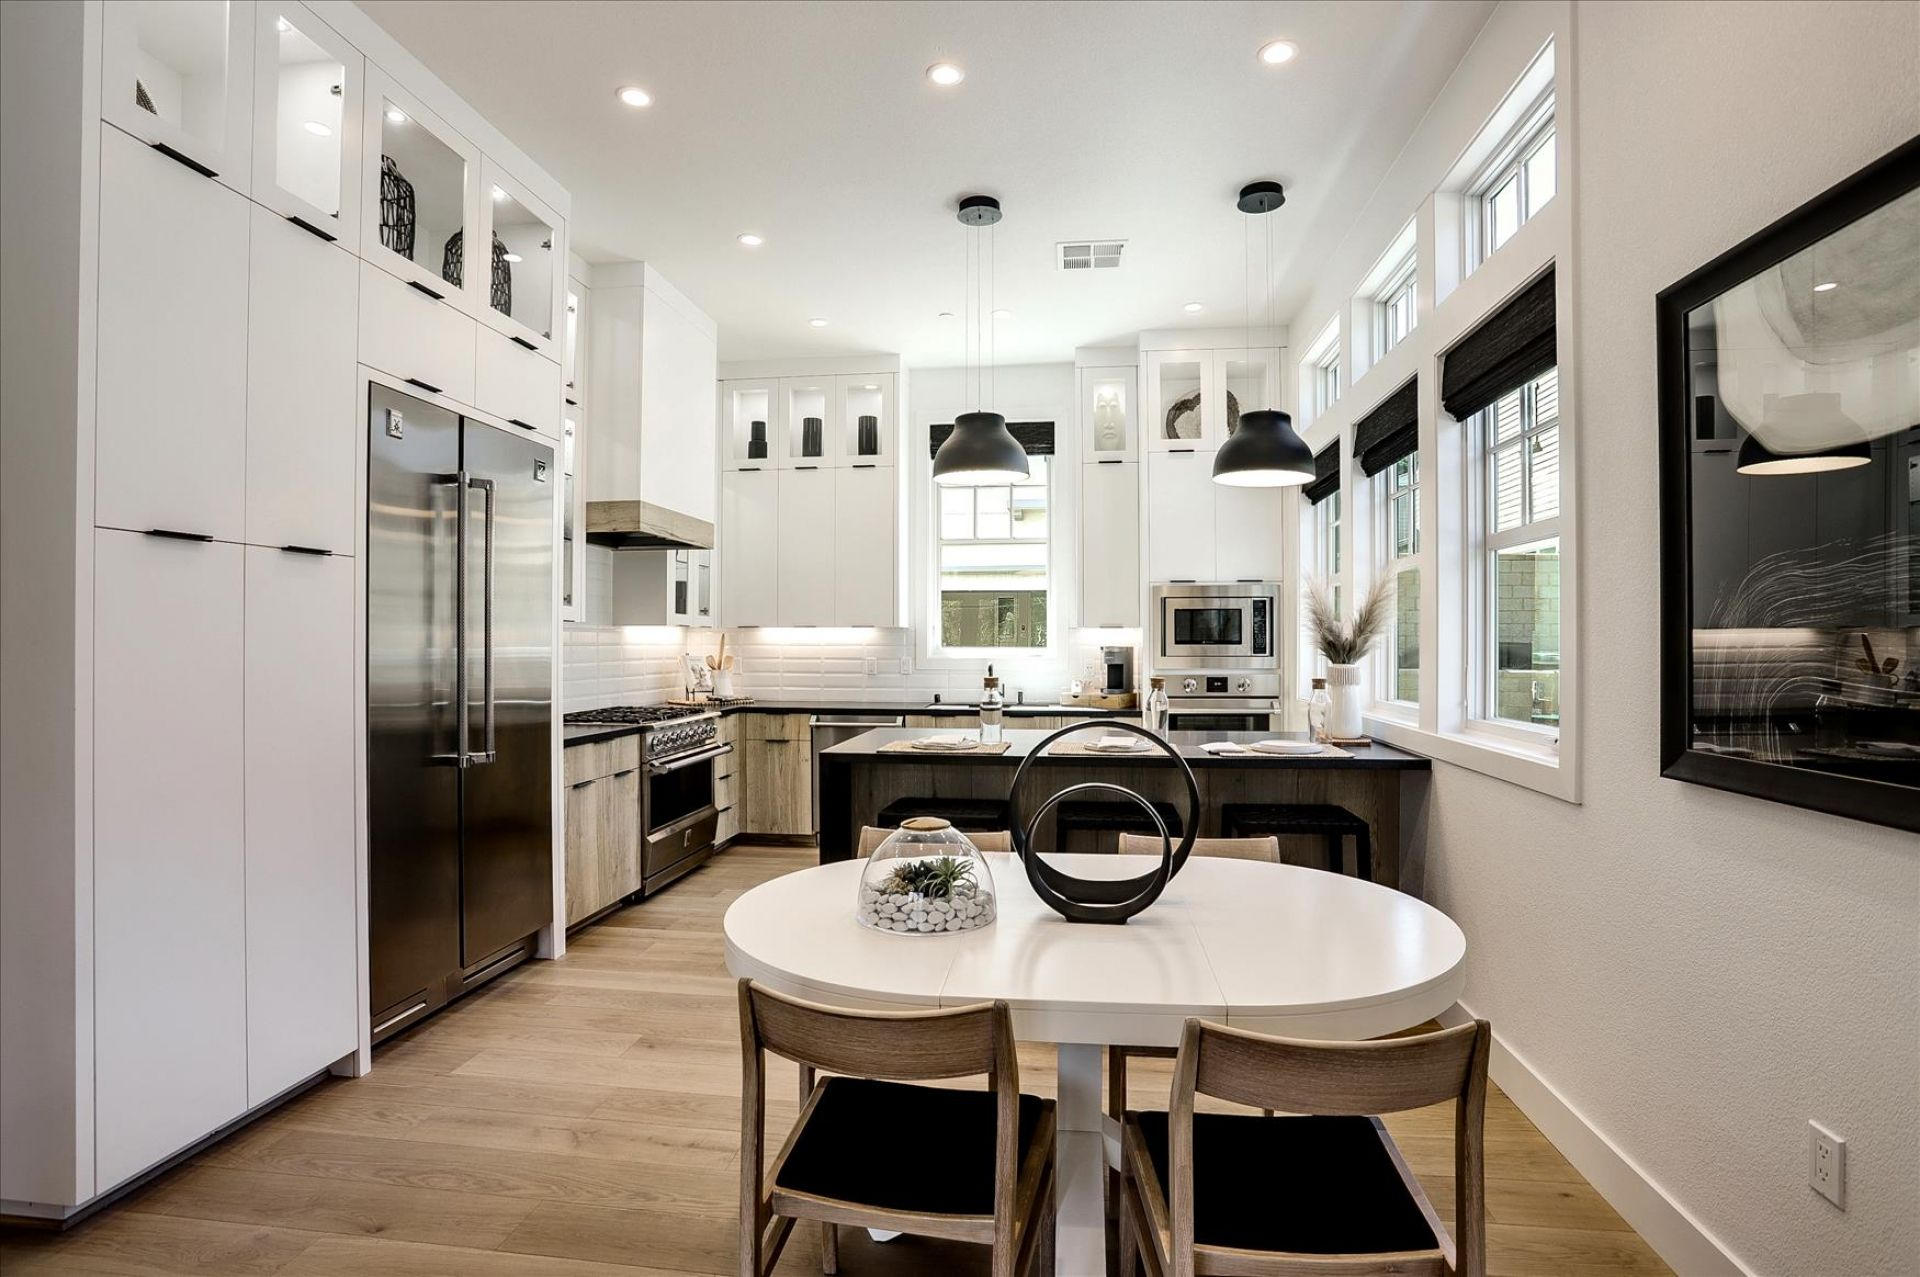 Kitchen featured in the 2X By SummerHill Homes in San Jose, CA